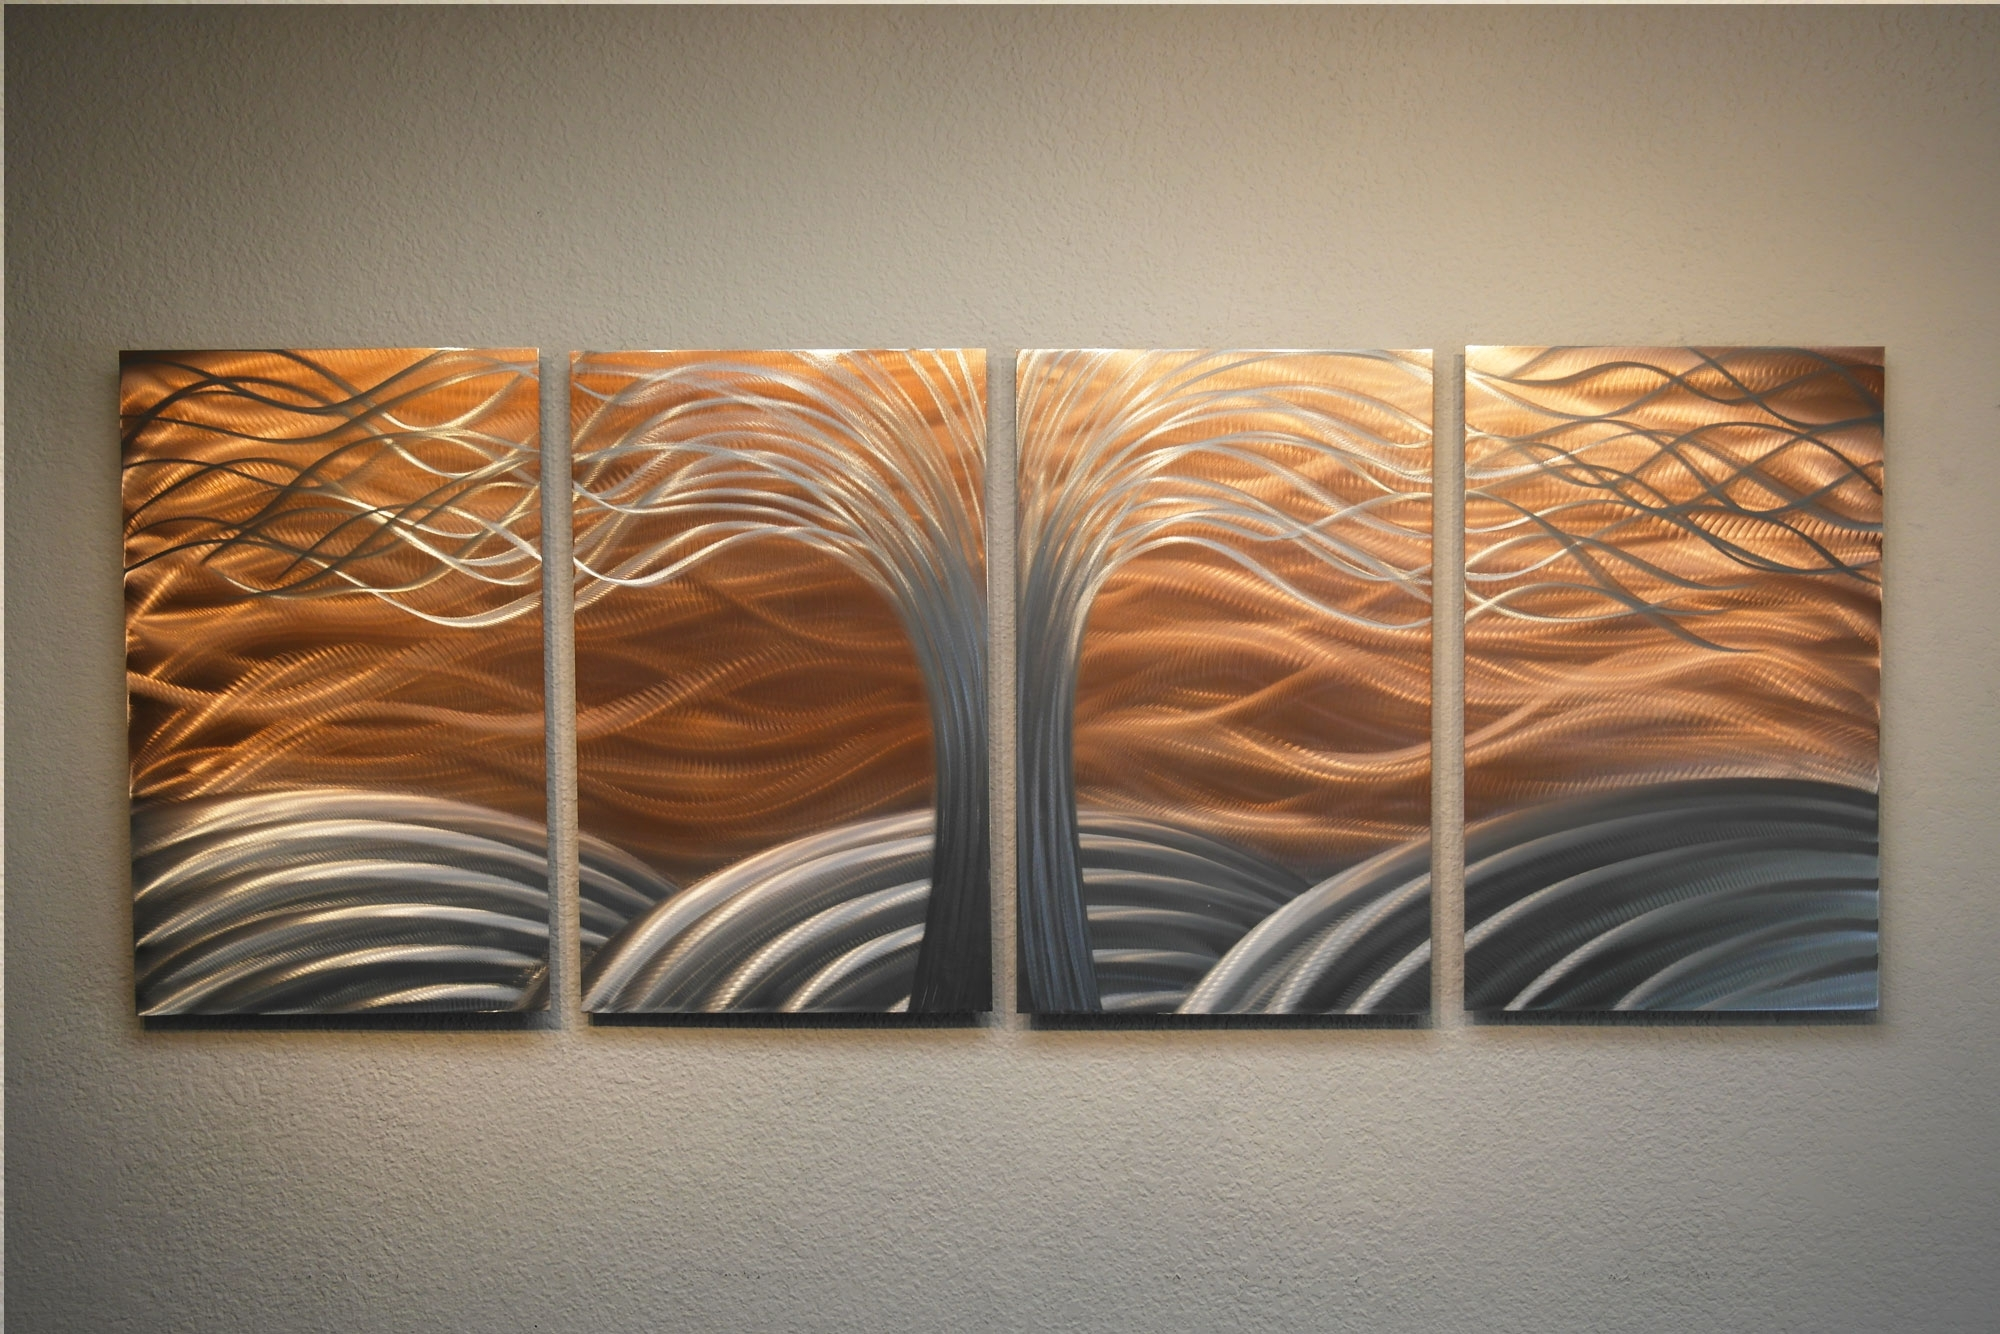 Tree Of Life Bright Copper – Metal Wall Art Abstract Sculpture Intended For Most Recent Tree Of Life Wall Art (Gallery 9 of 15)